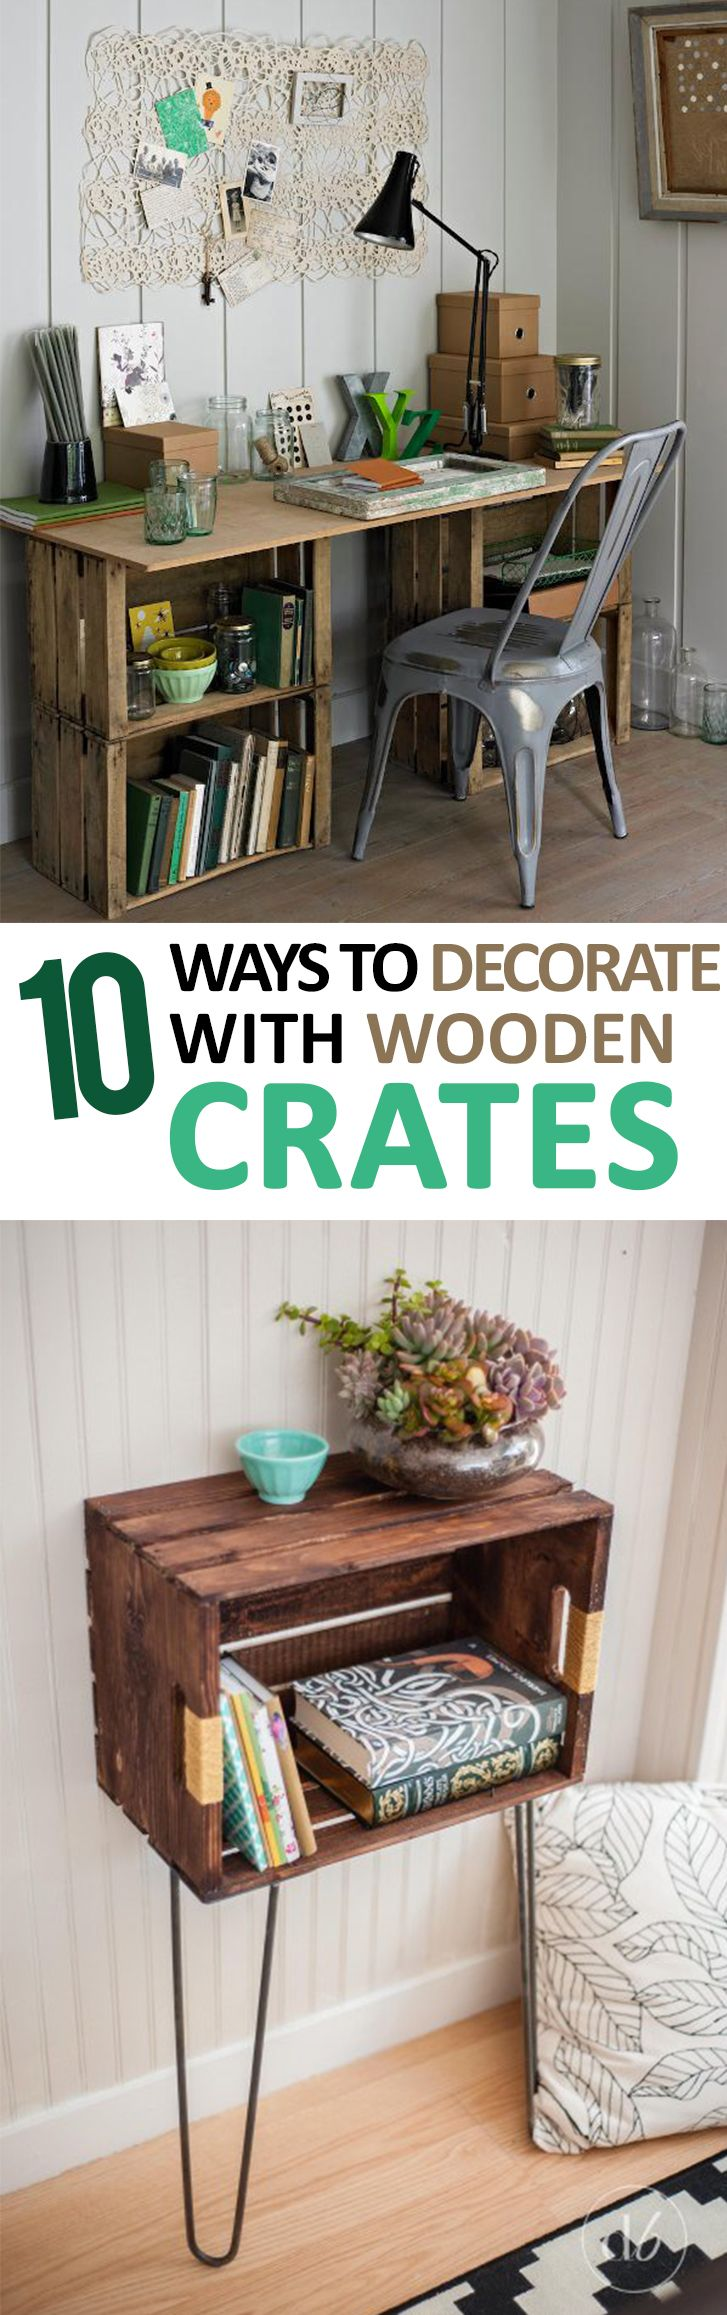 10 ways to decorate with wooden crates 10 Ways to Decorate With Wooden